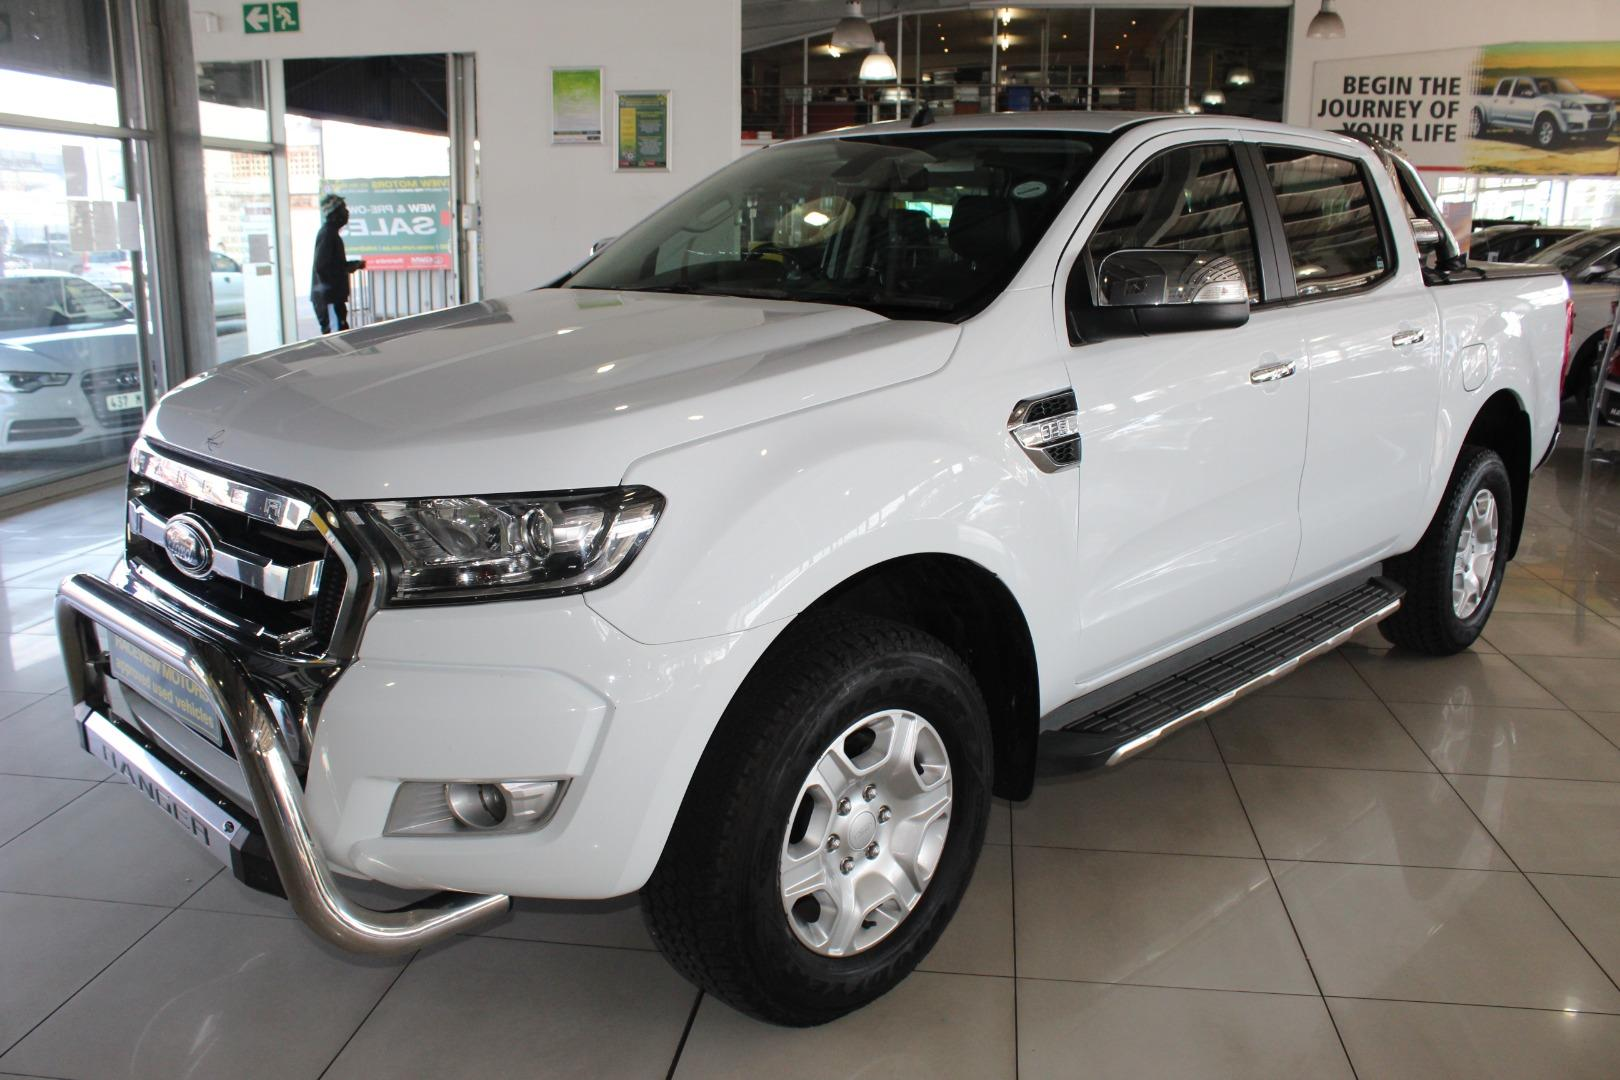 2018 Ford Ranger 3.2TDCi Double Cab Hi-Rider XLT Auto- Picture 8